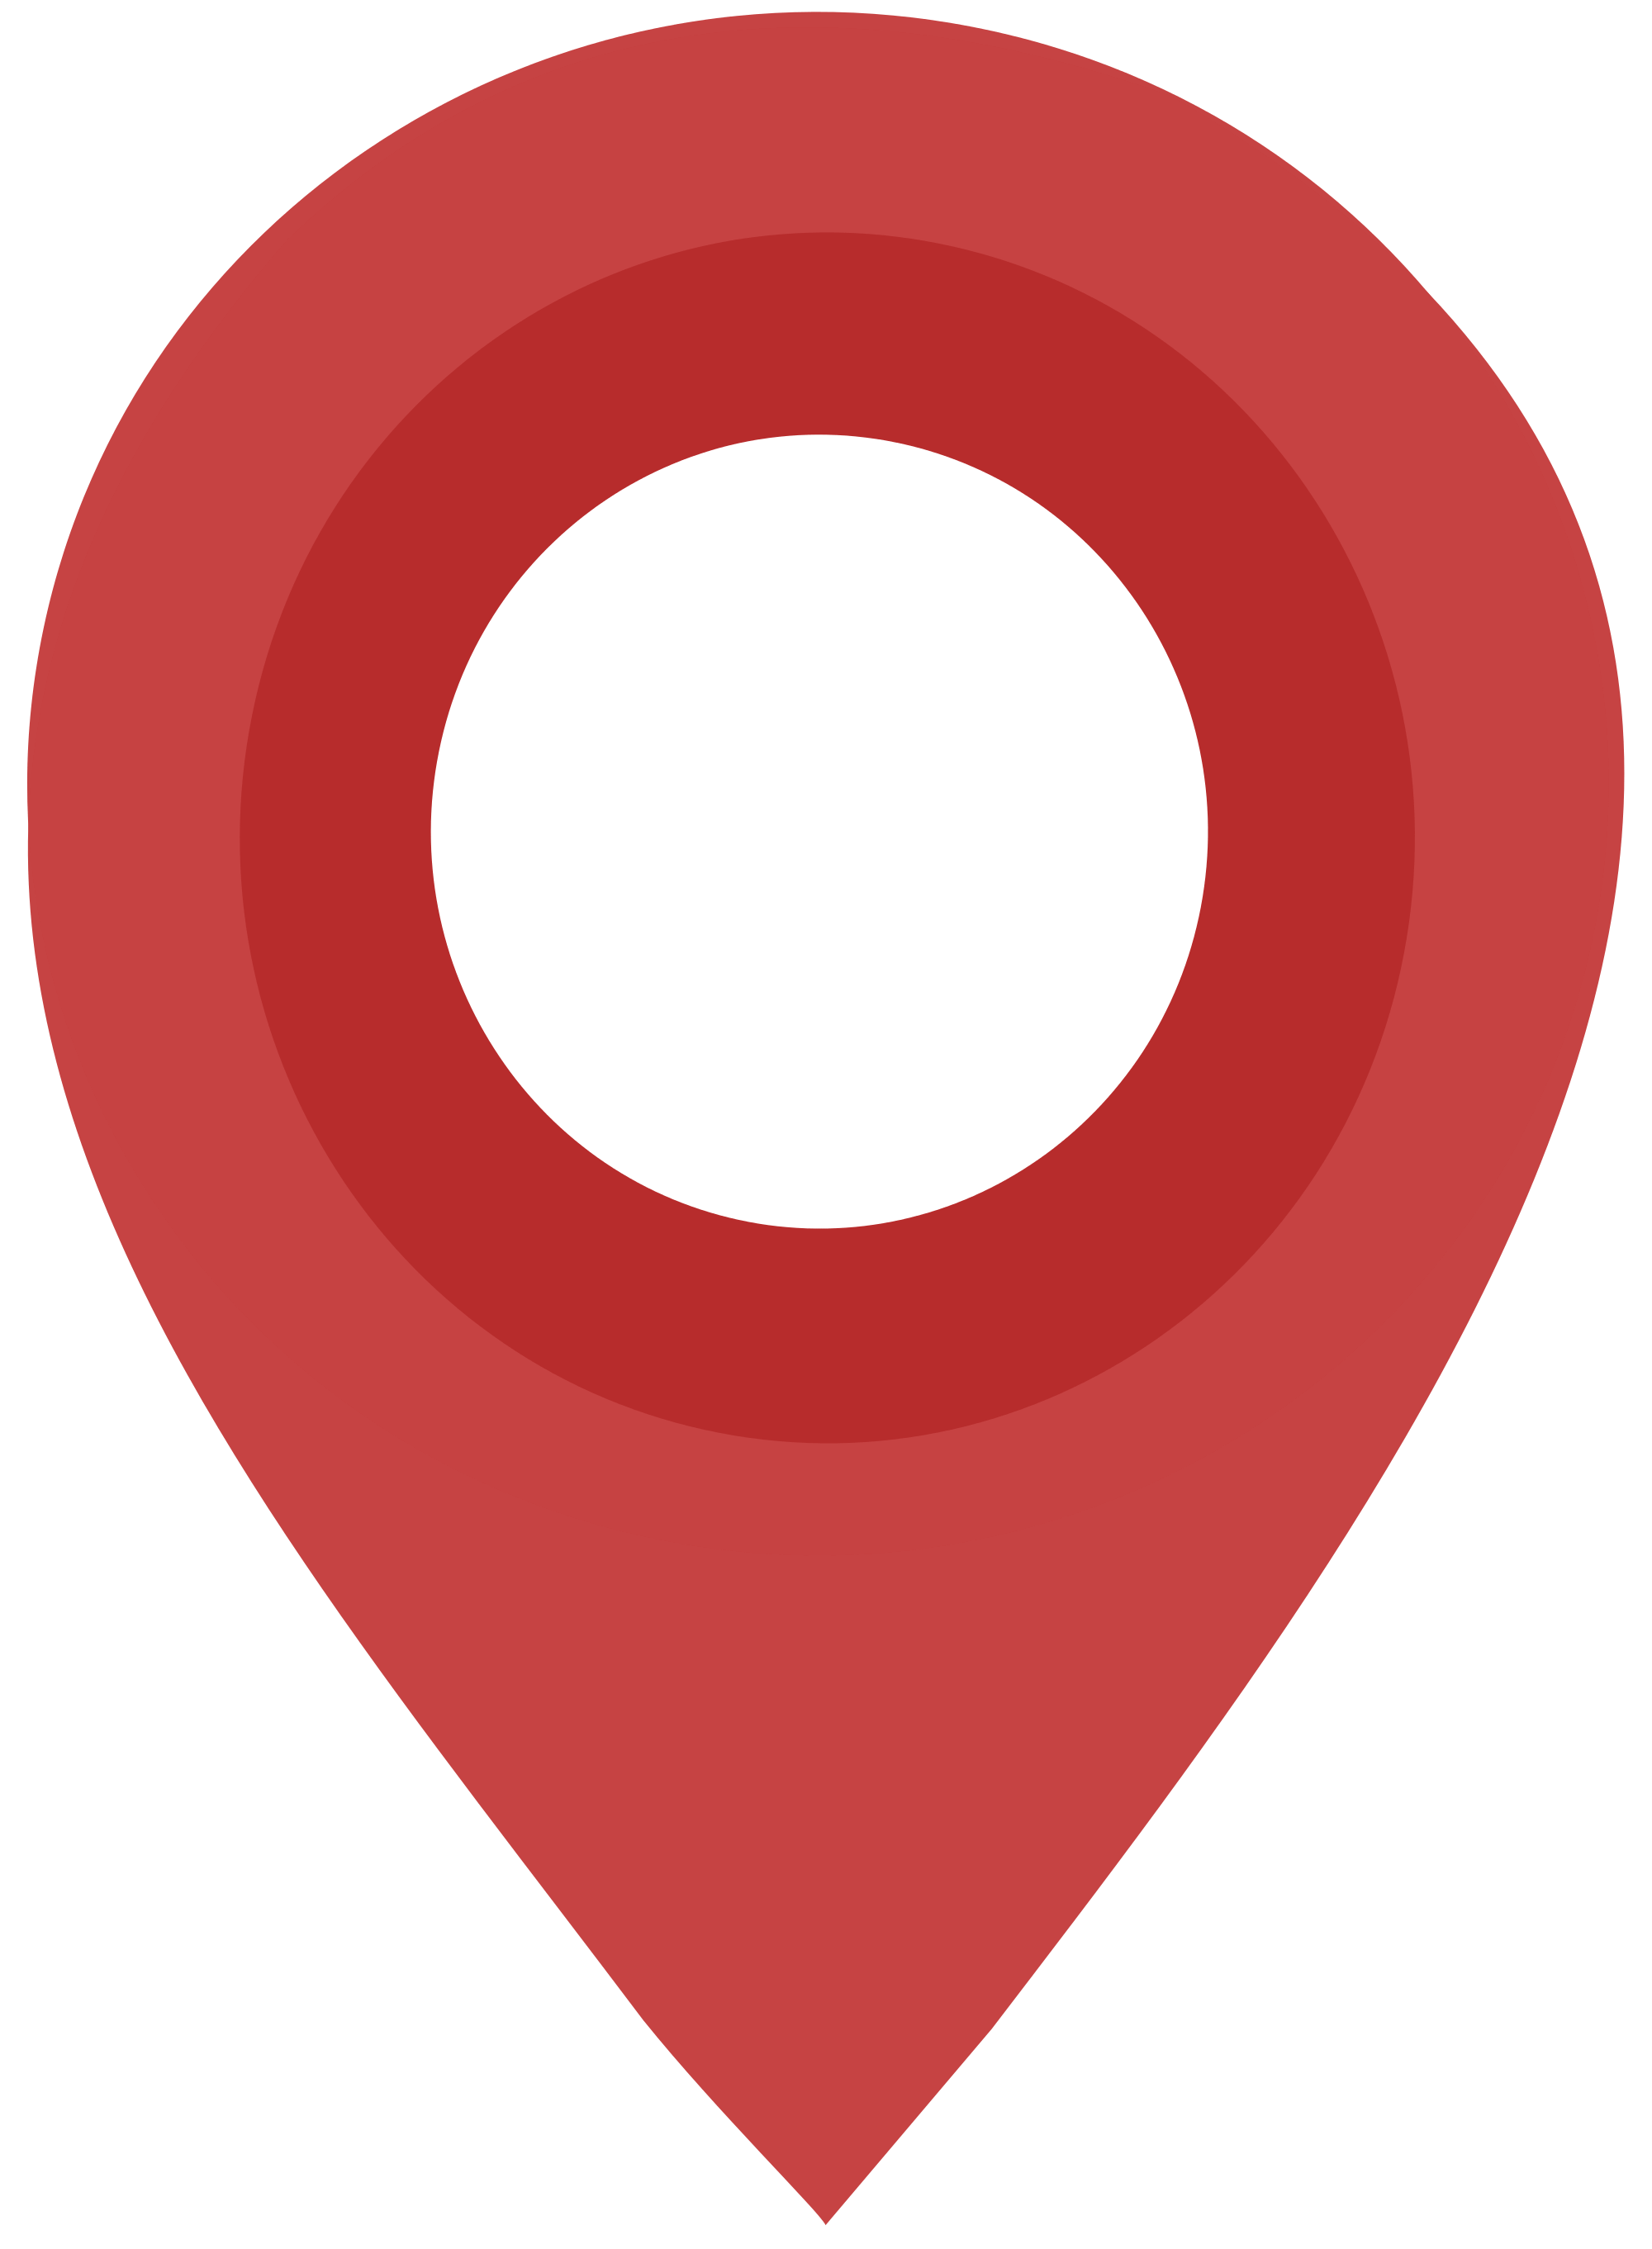 pin location png